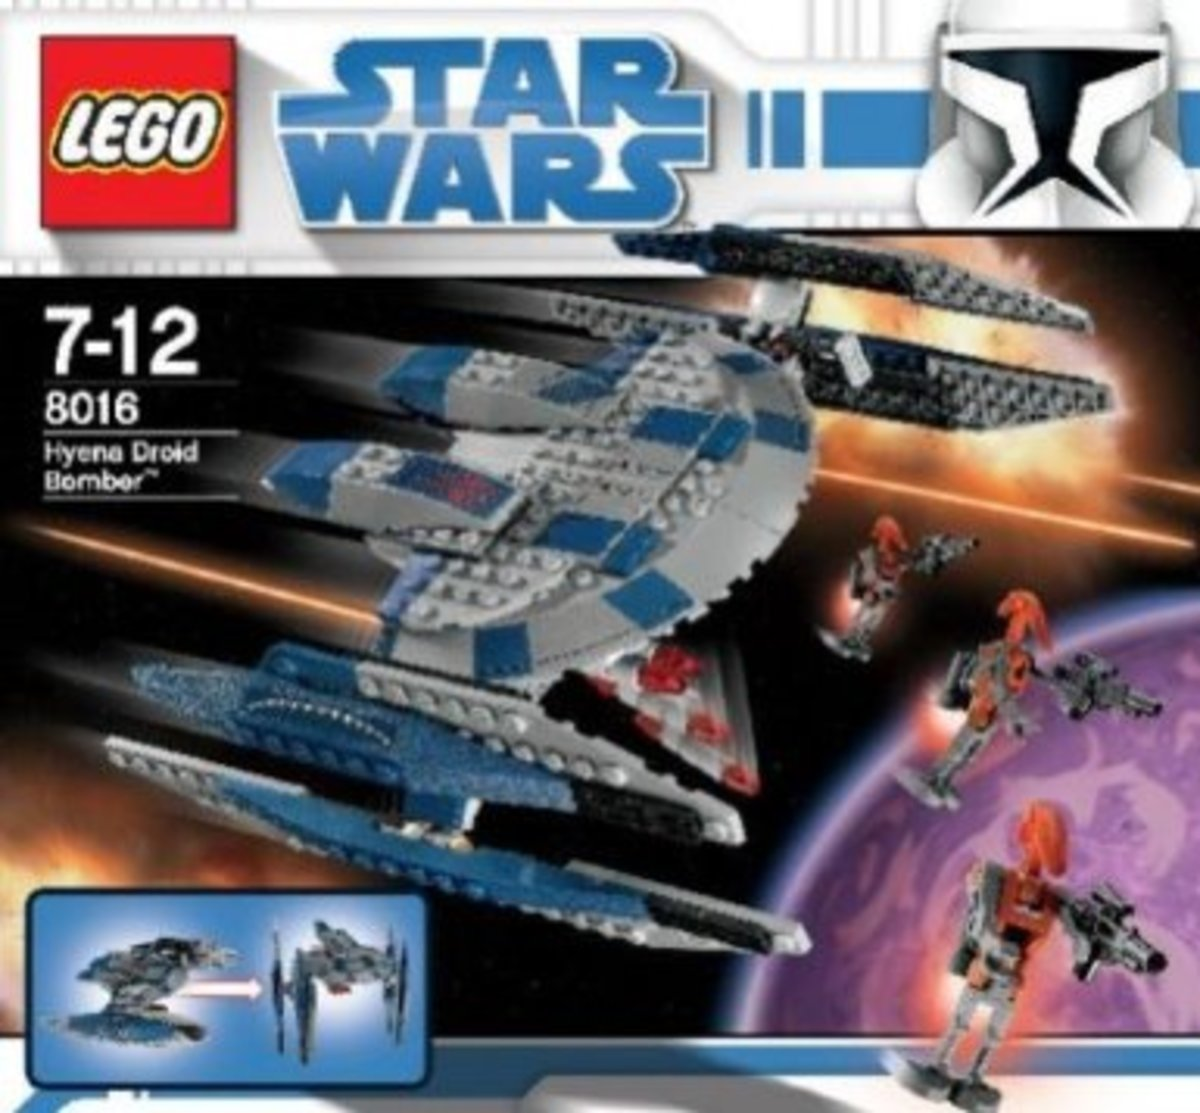 LEGO Star Wars Hyena Droid Bomber 8016 Box